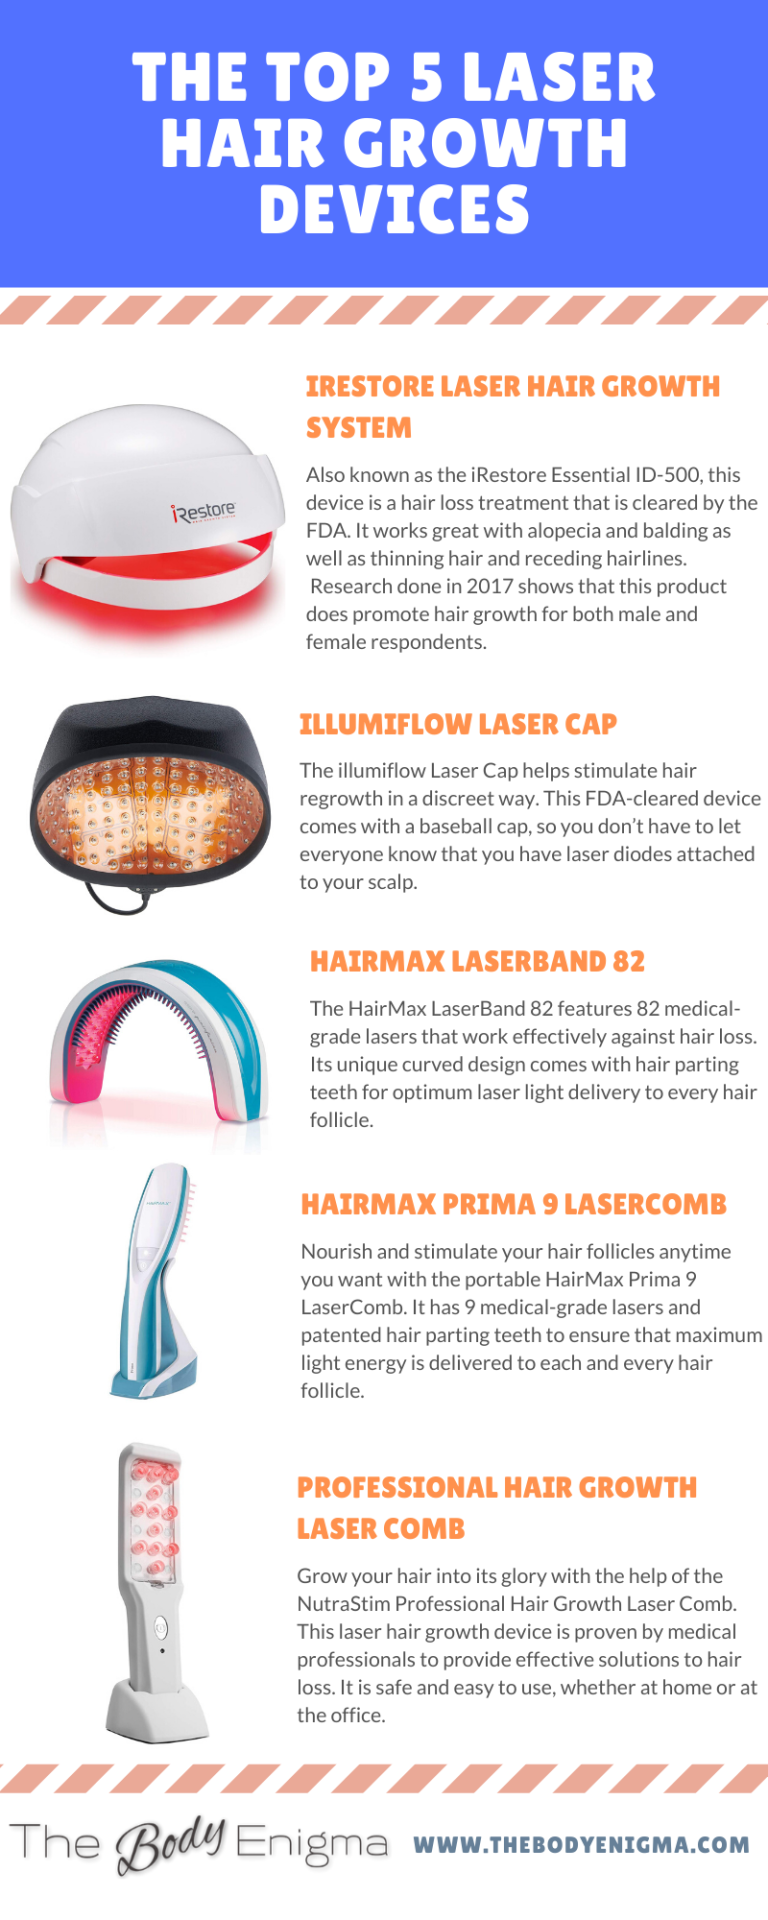 5 Best Laser Hair Growth Devices